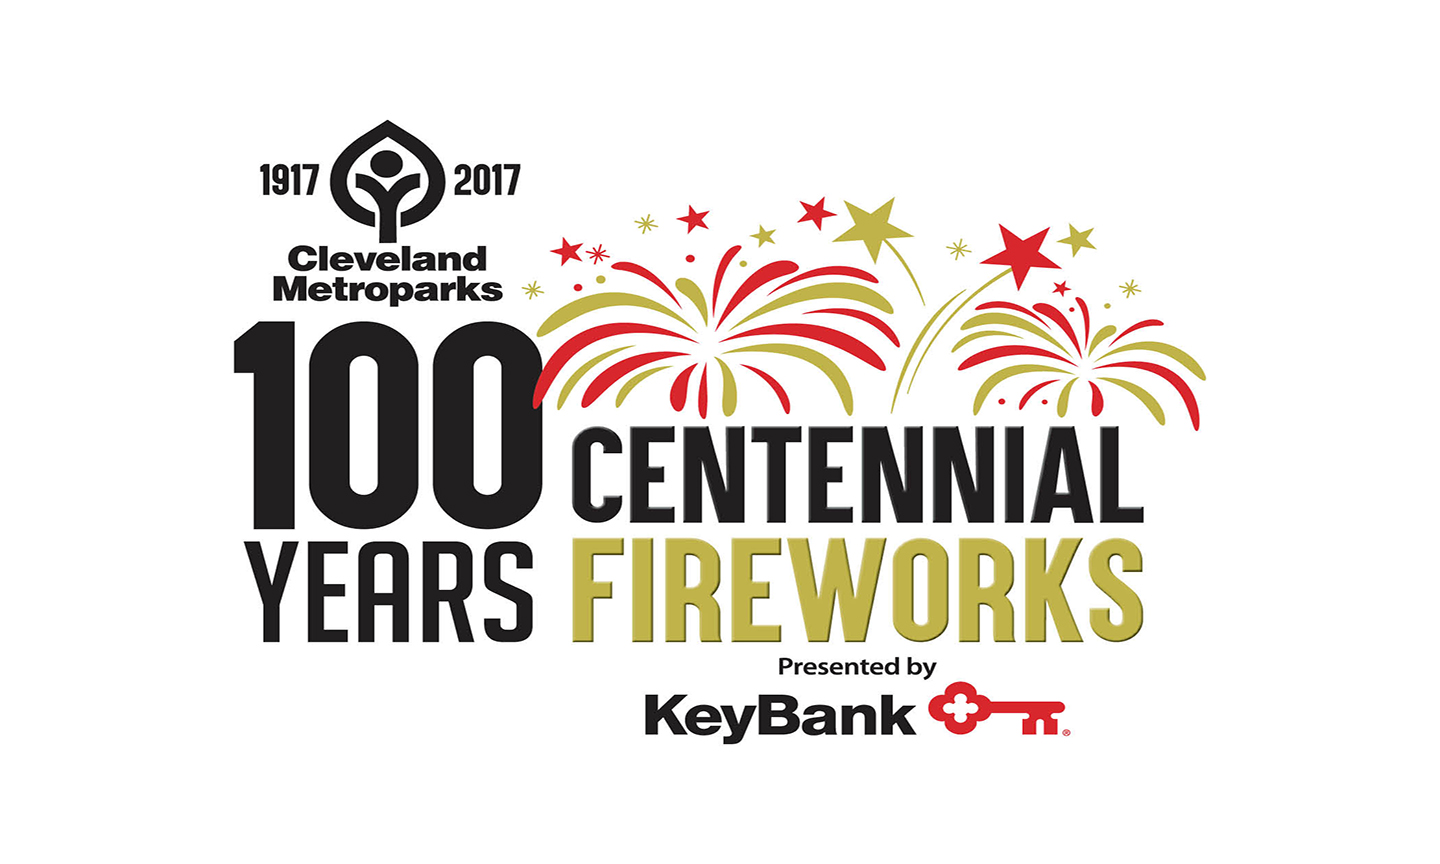 Cleveland Metroparks and KeyBank Announce Hometown Partnership